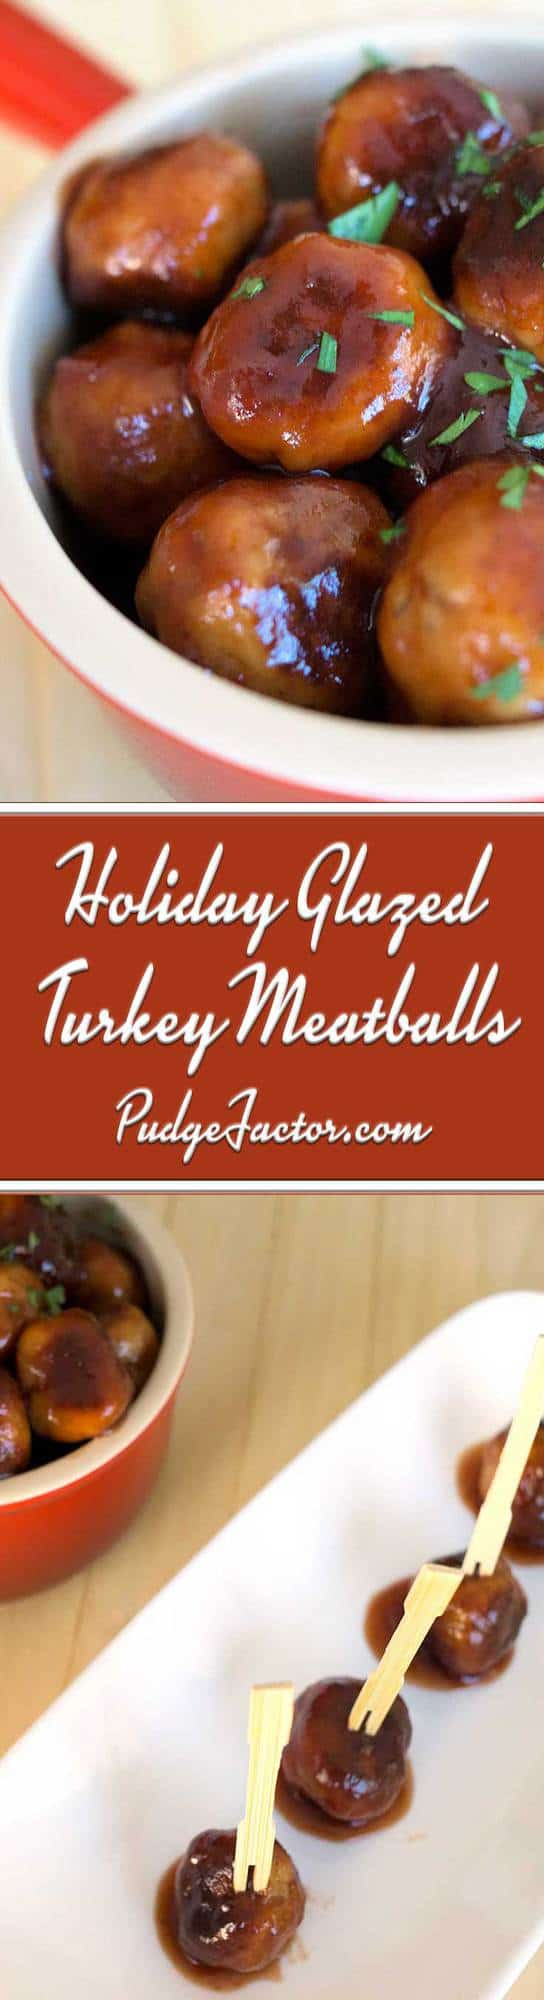 Holiday Glazed Turkey Meatballs - tender and flavorful and a sweet savory sauce. They are sure to be a winner at your next holiday gathering.